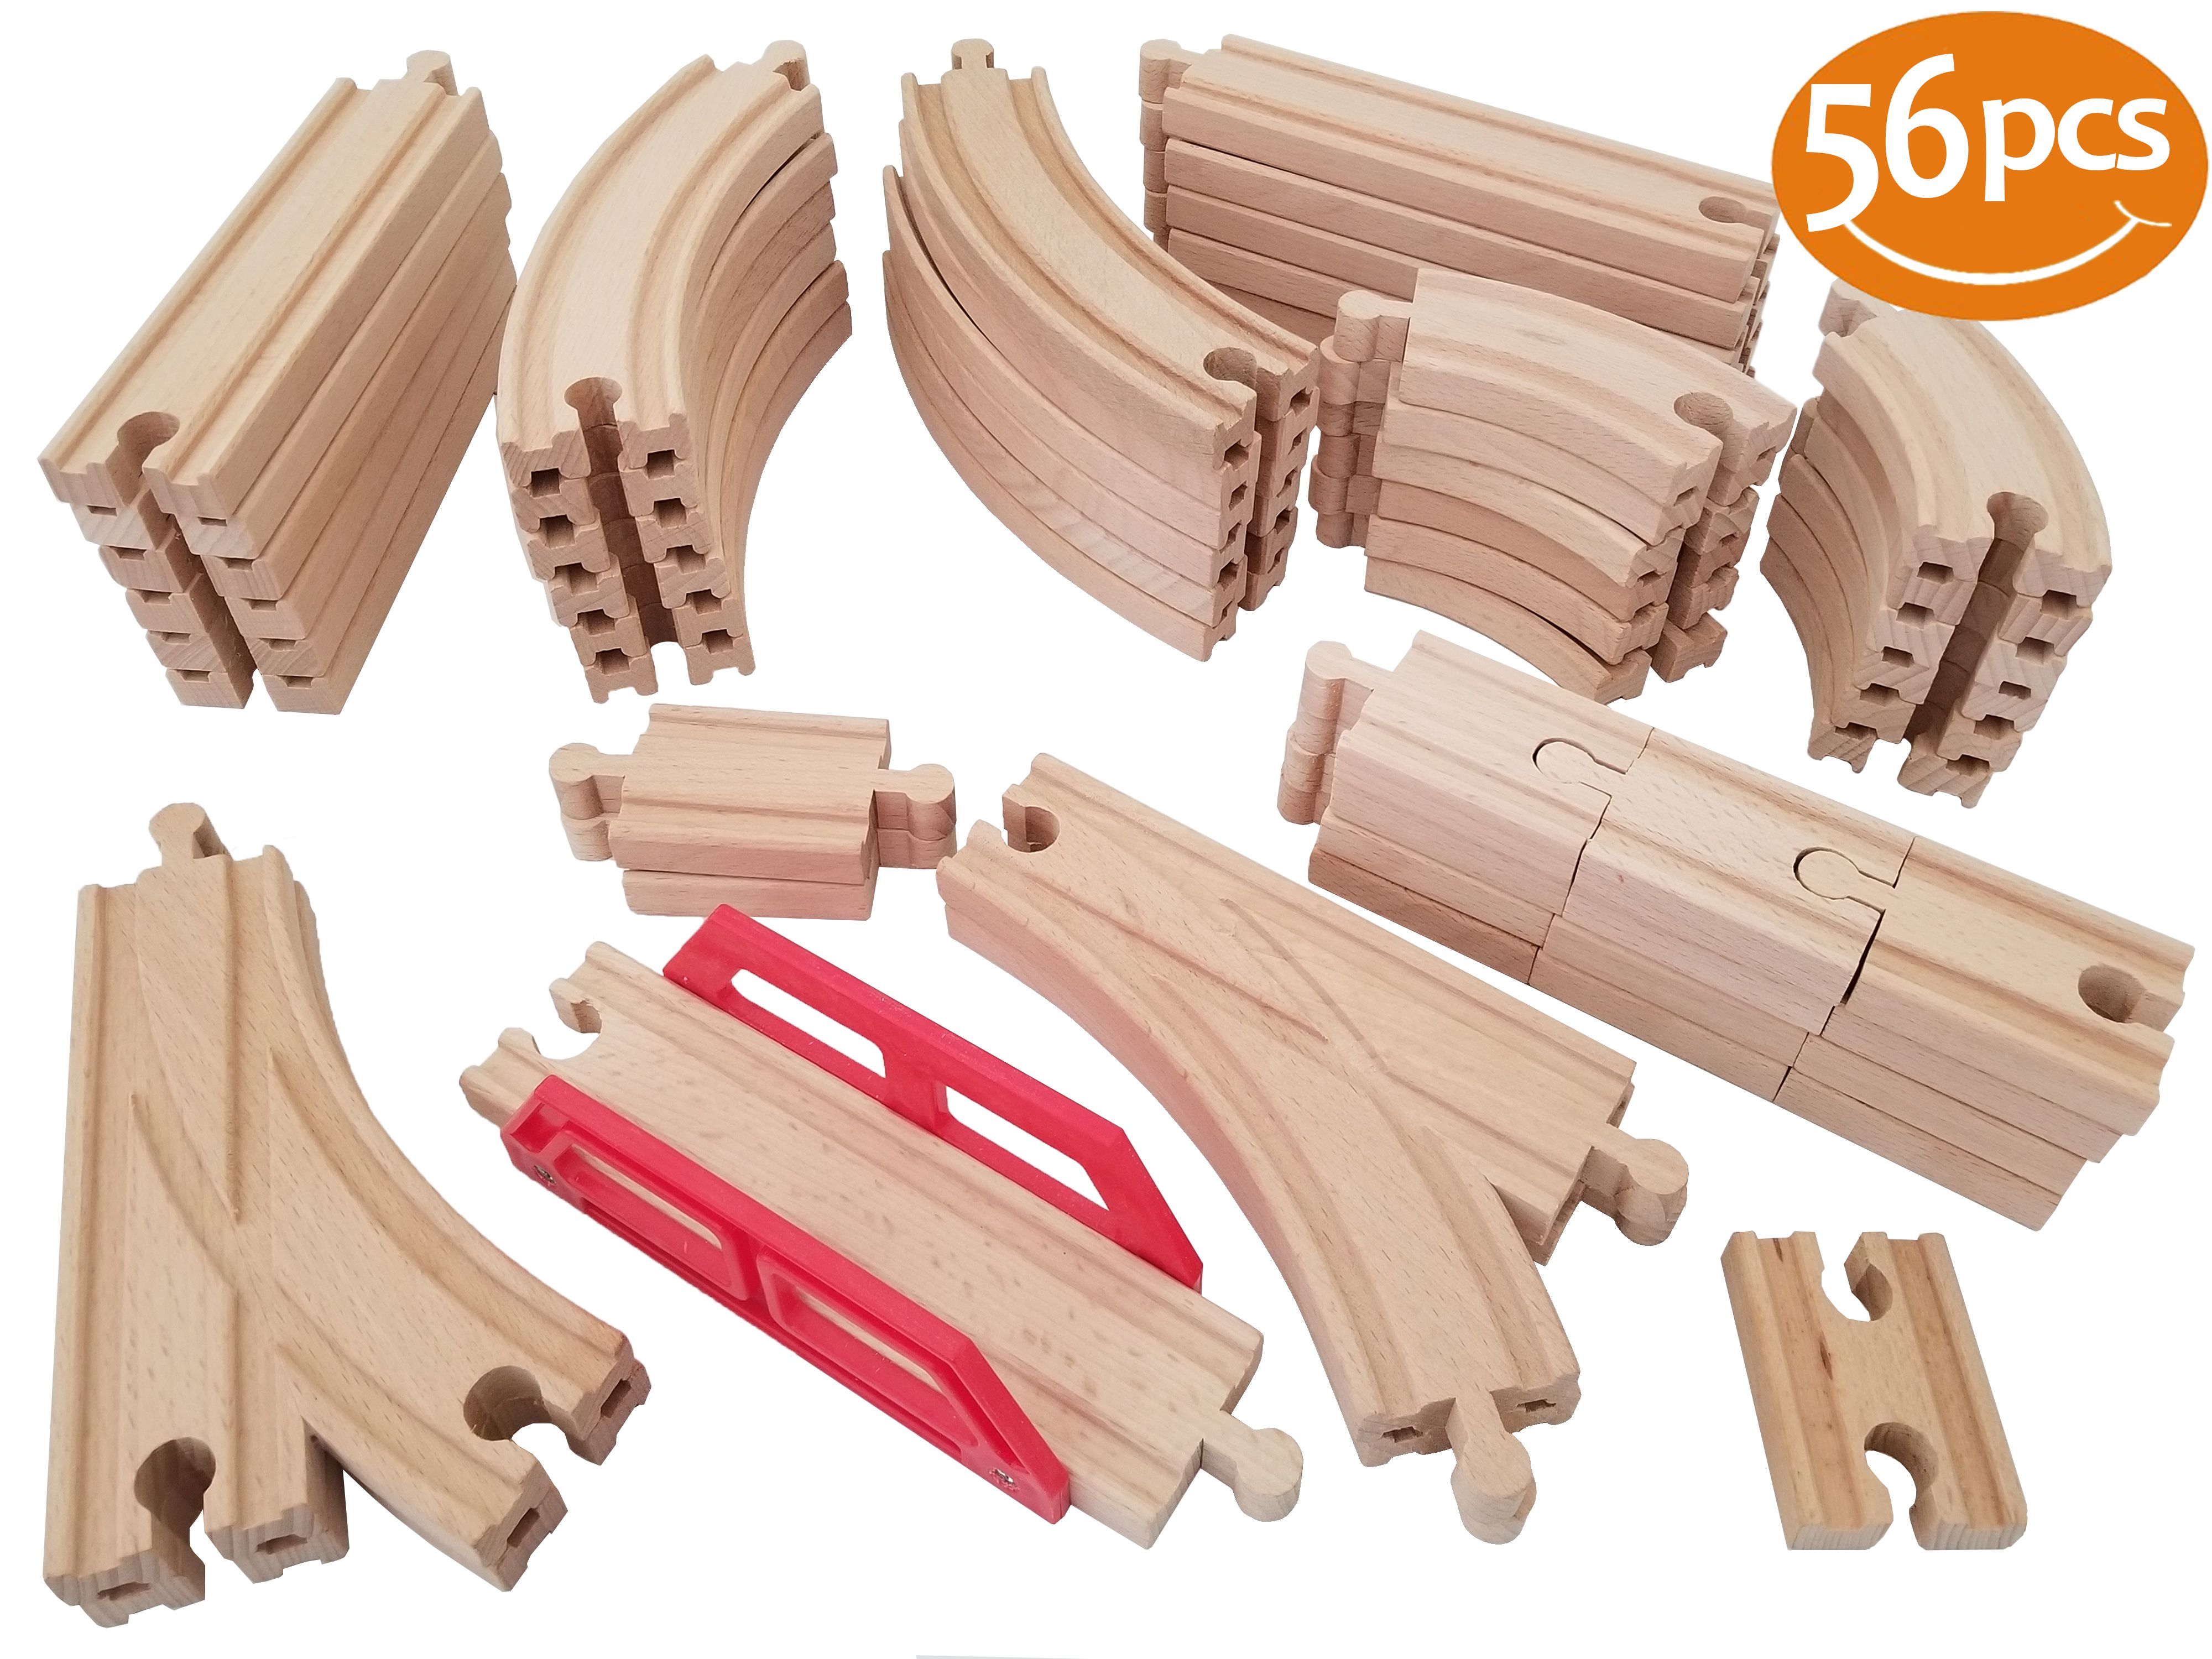 NEW Straight Wooden Railway Train Track Mini Adapter Set Toys for Play 8 pieces